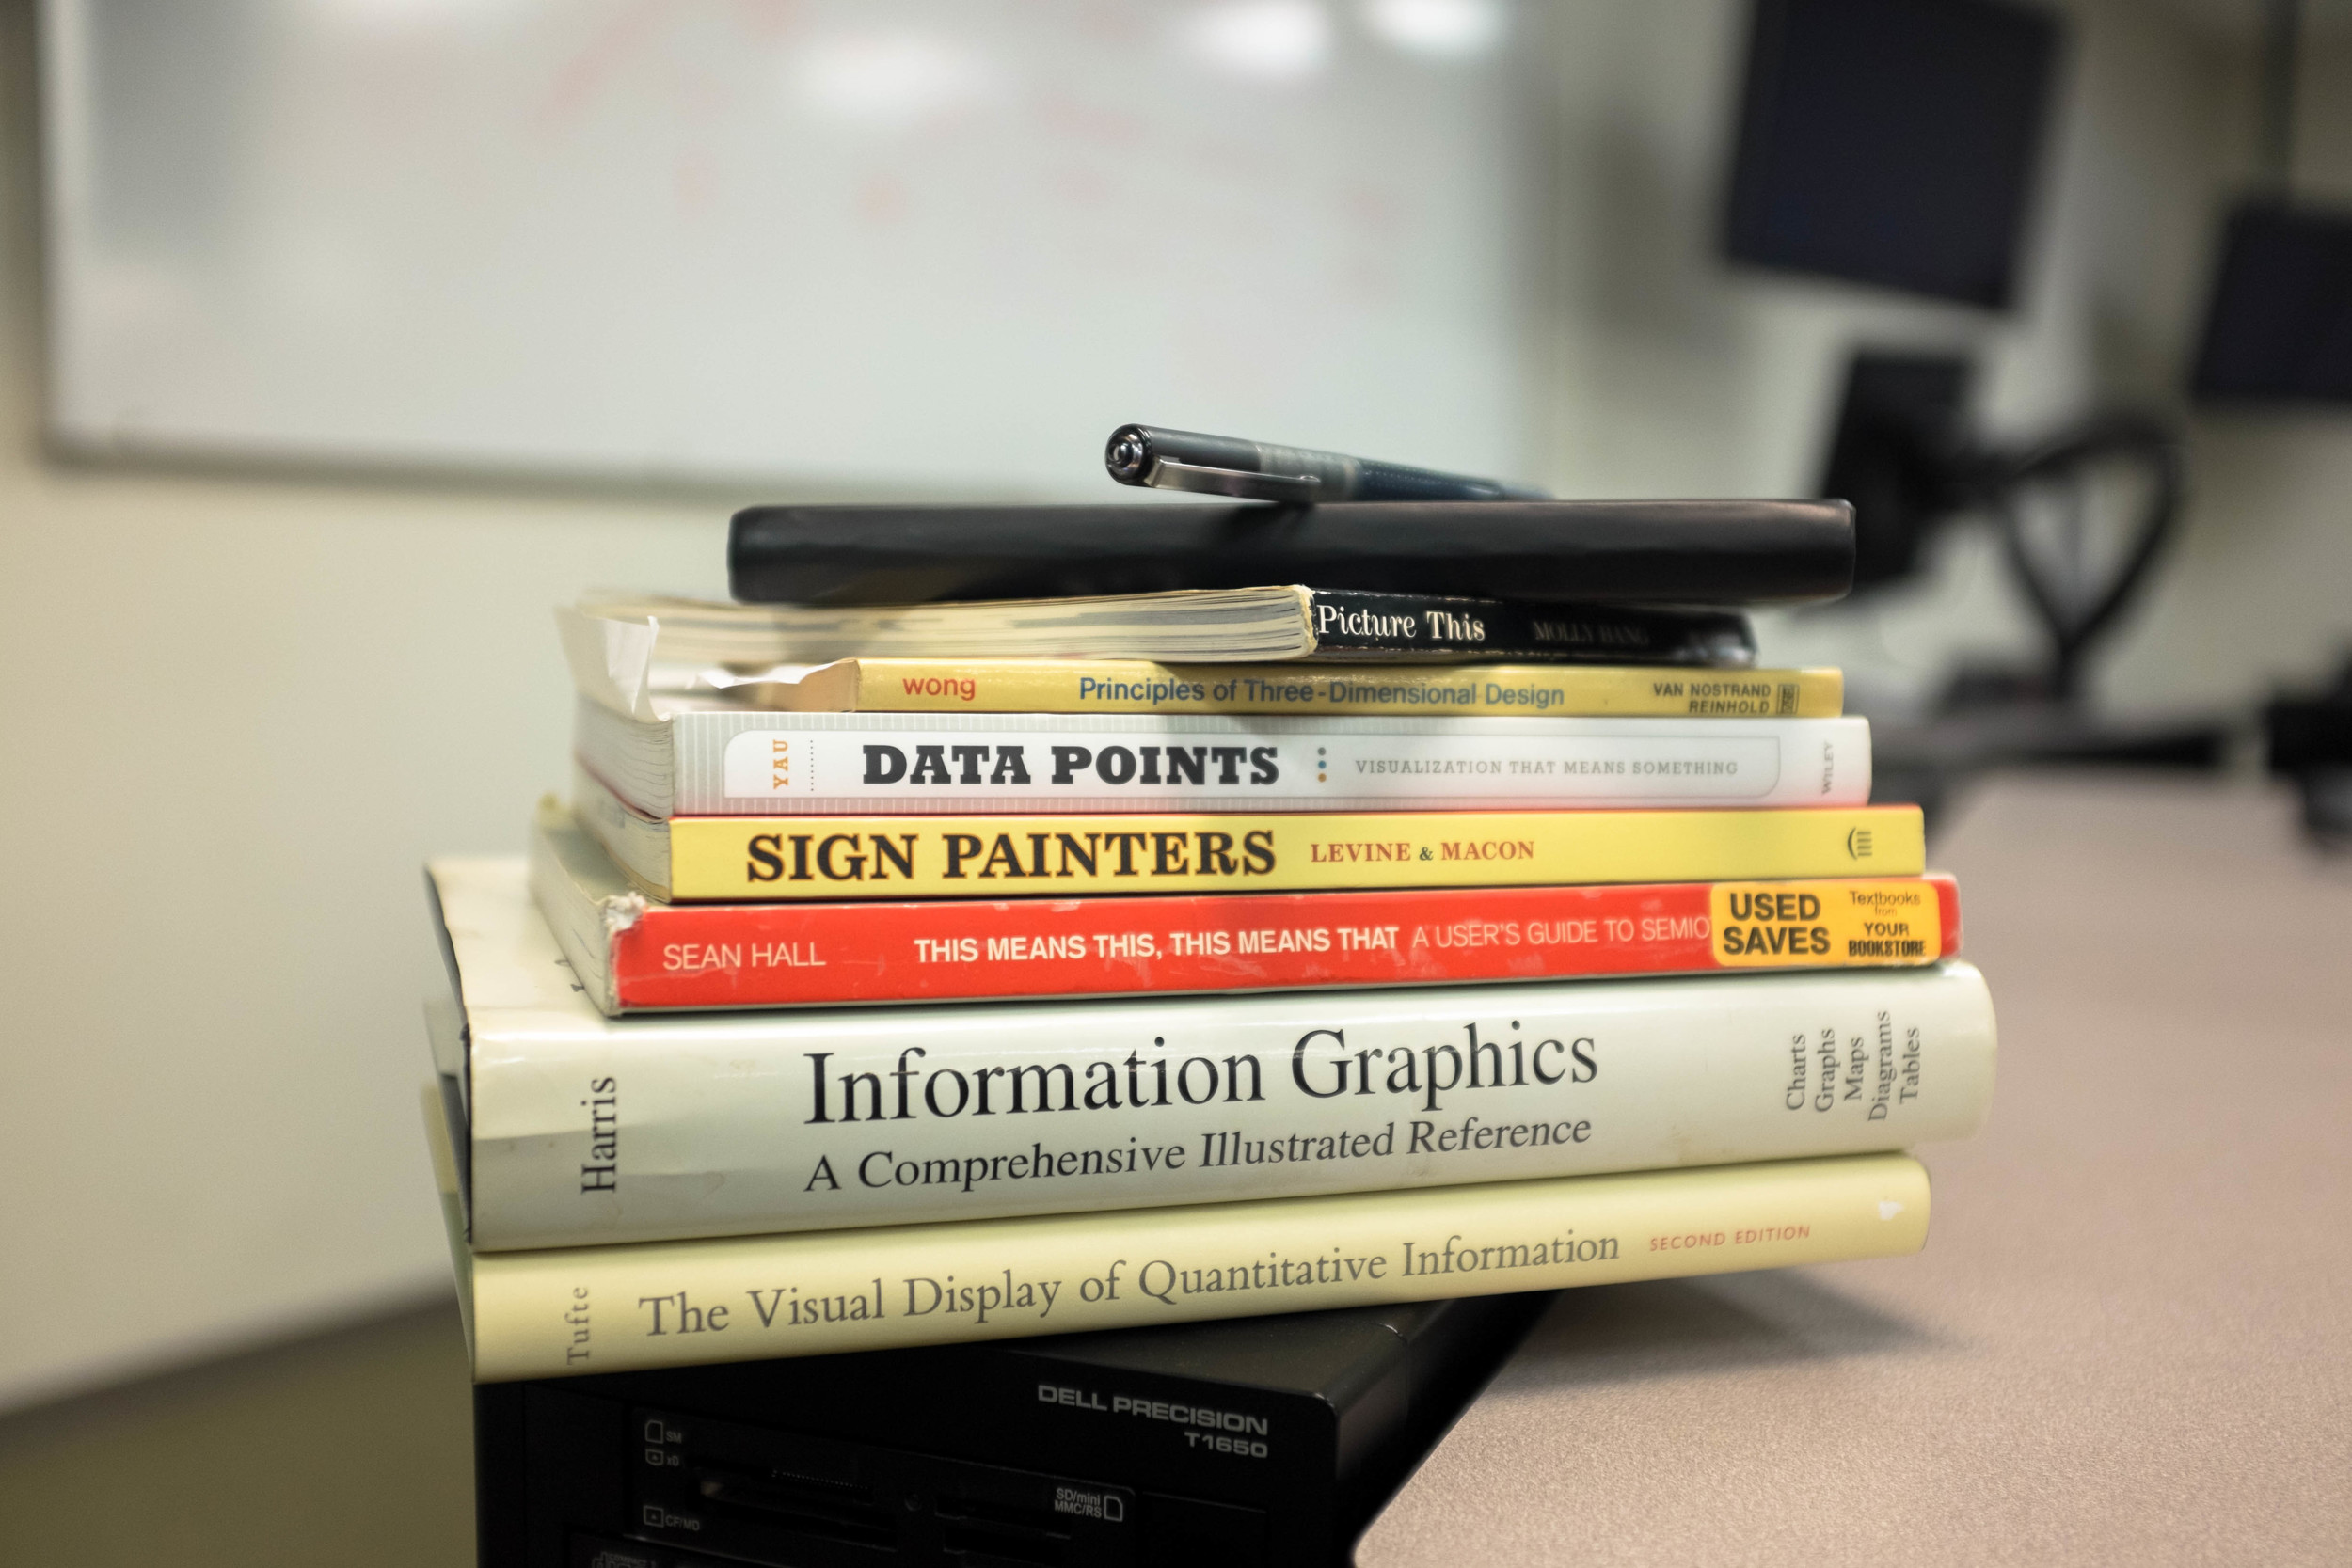 The second round books.